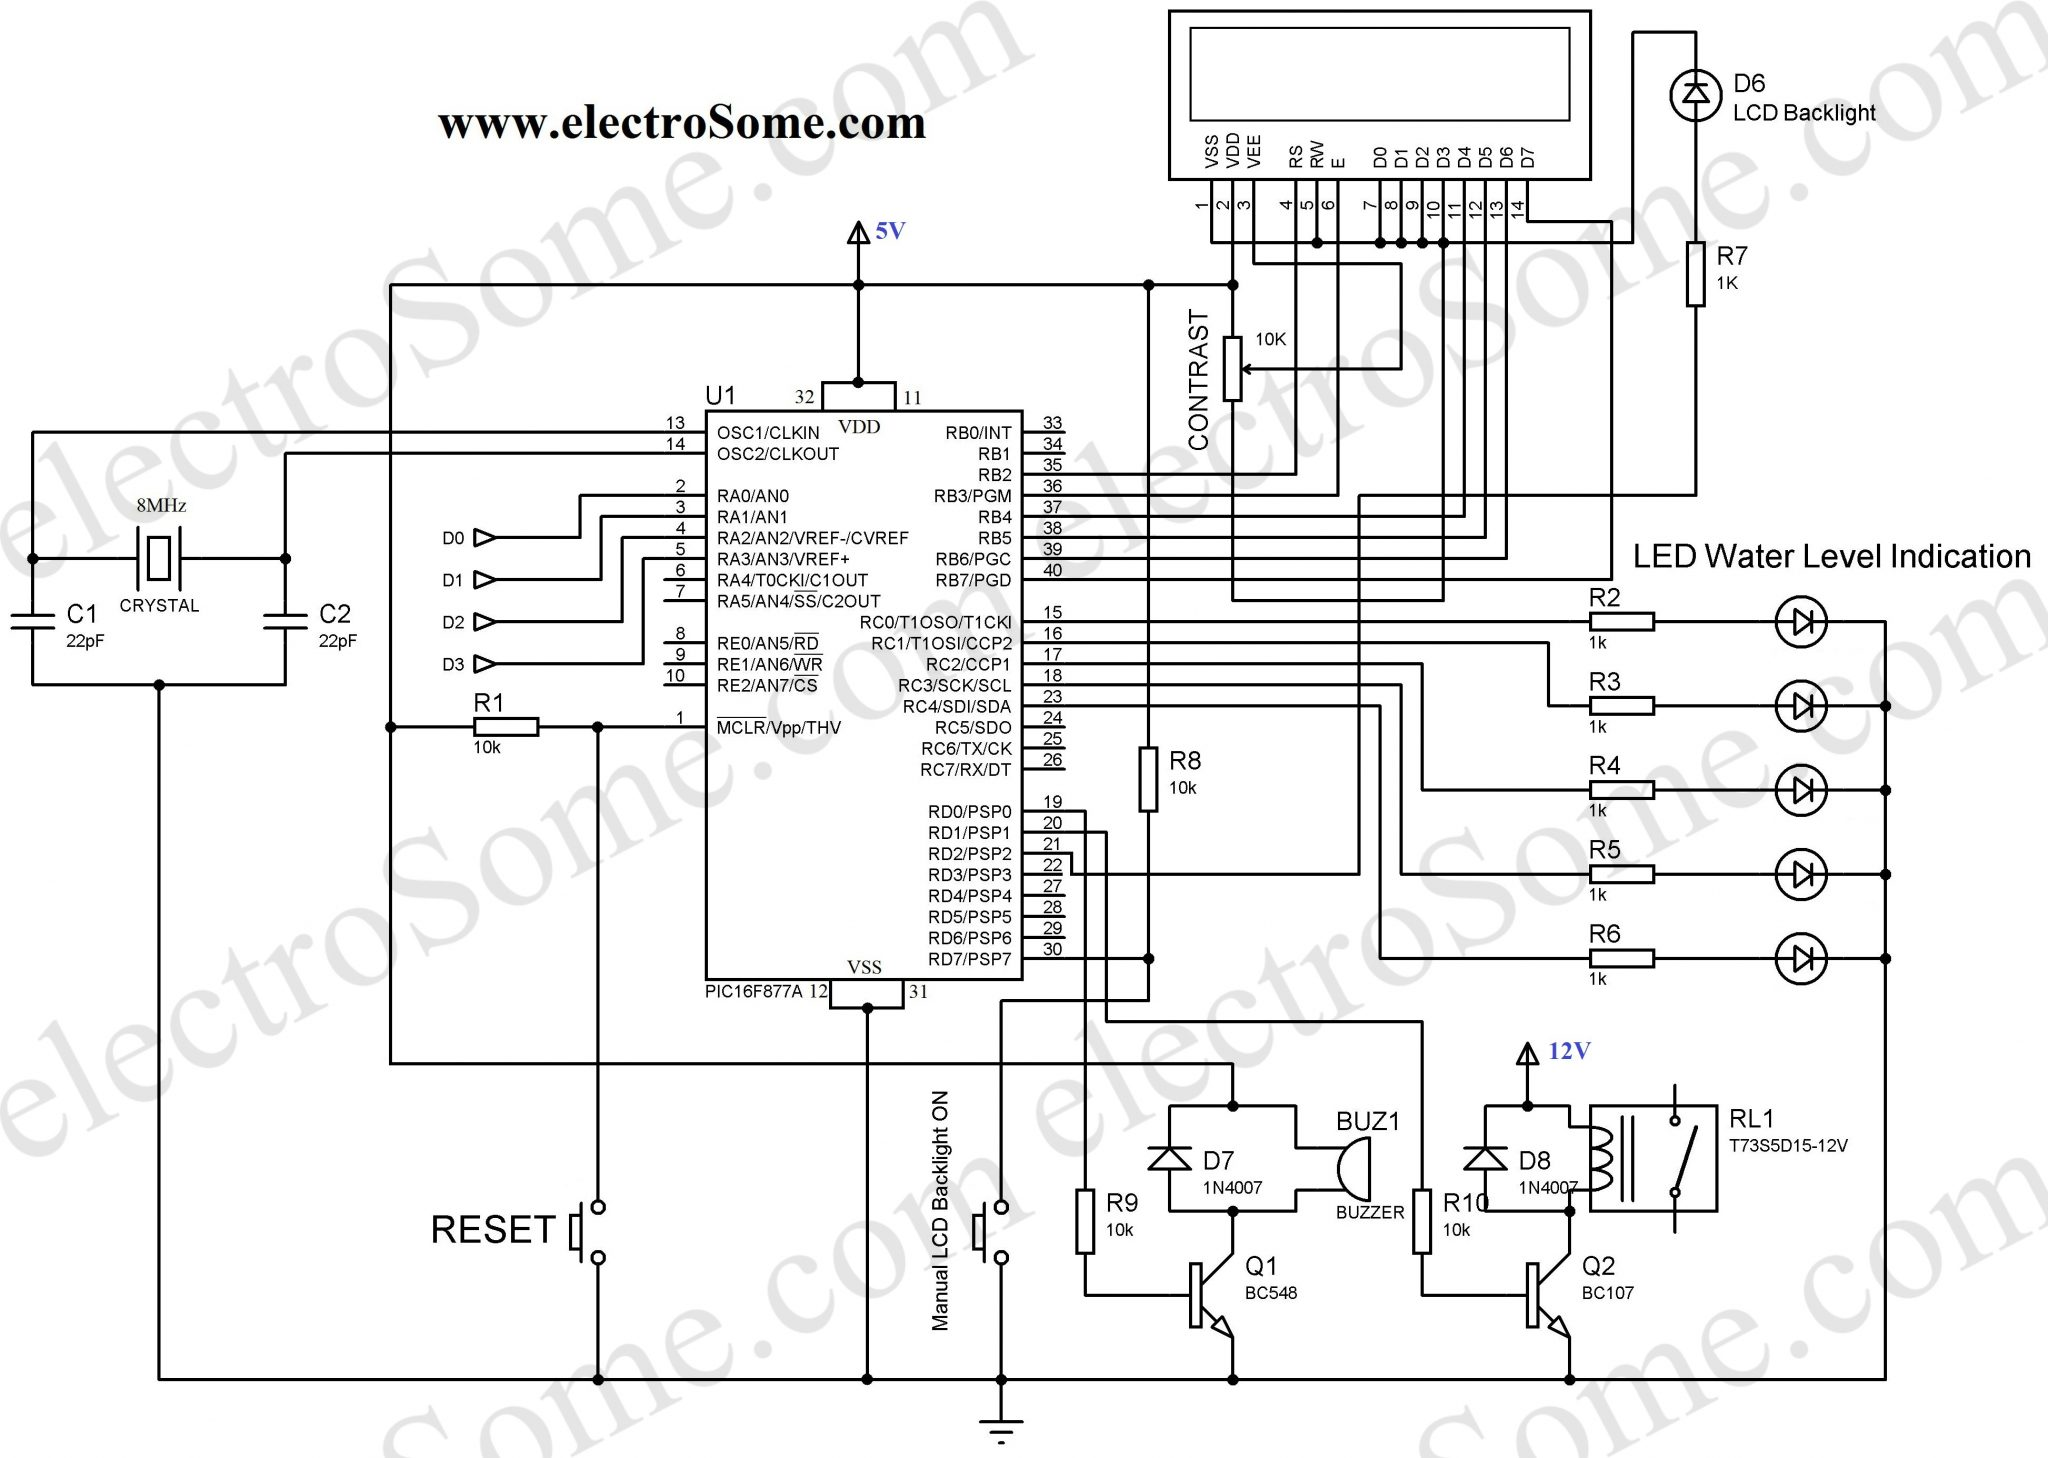 Water Level Control Circuit Diagram Using Relays Guide And Irrigation Wiring Get Free Image About Pump Relay Motor Plc